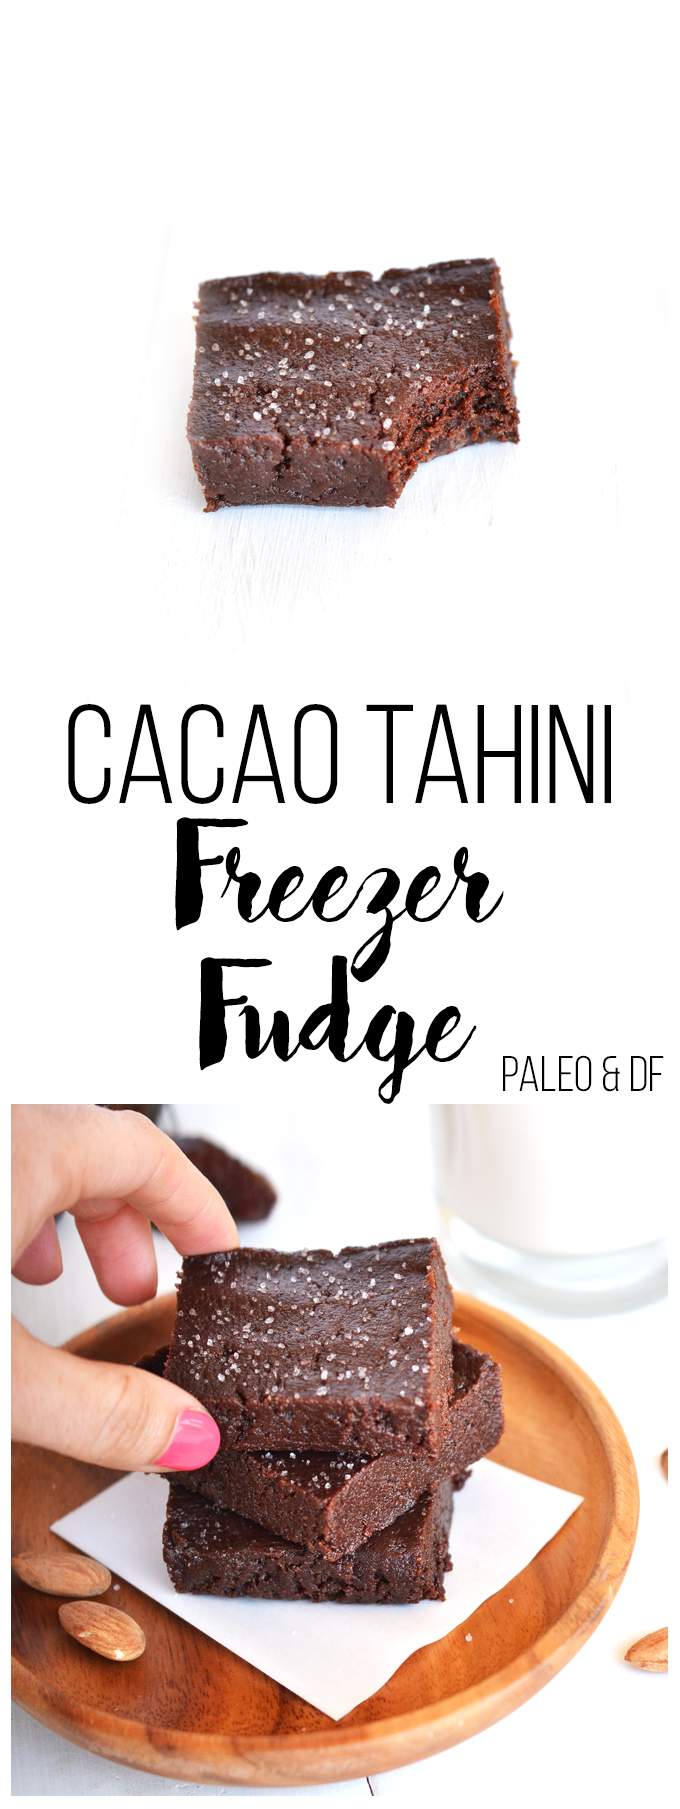 This Cacao Tahini Freezer Fudge has only 5 ingredients and is beyond simple to make! Paleo, gluten-free, dairy-free and vegan treat - perfect for a healthy snack or dessert!